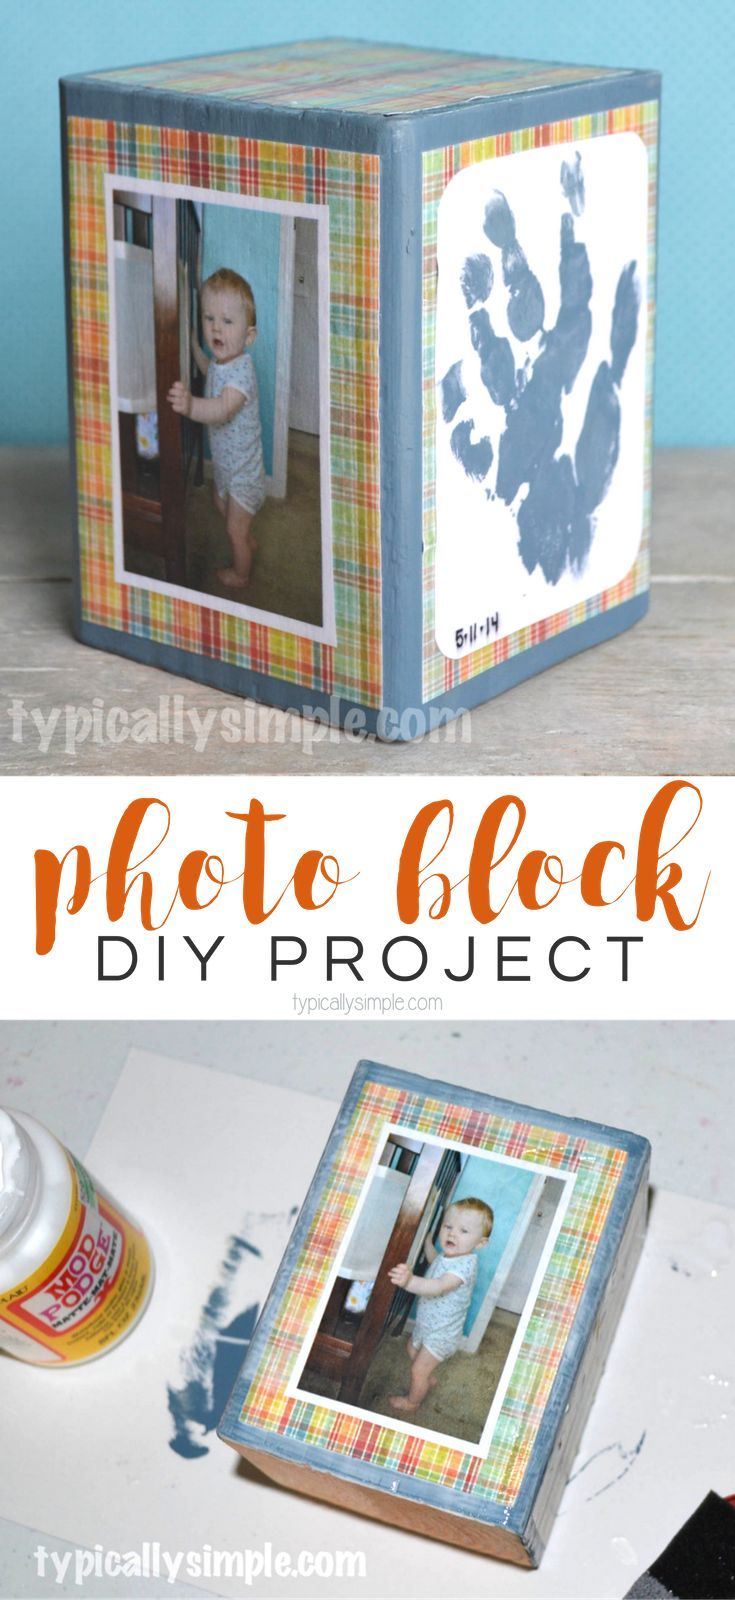 A homemade gift that is perfect for displaying favorite photos, handprints, or even little drawings made by the kids. This DIY Photo Block is a simple project to make as a Mother's Day, Christmas, or birthday gift!